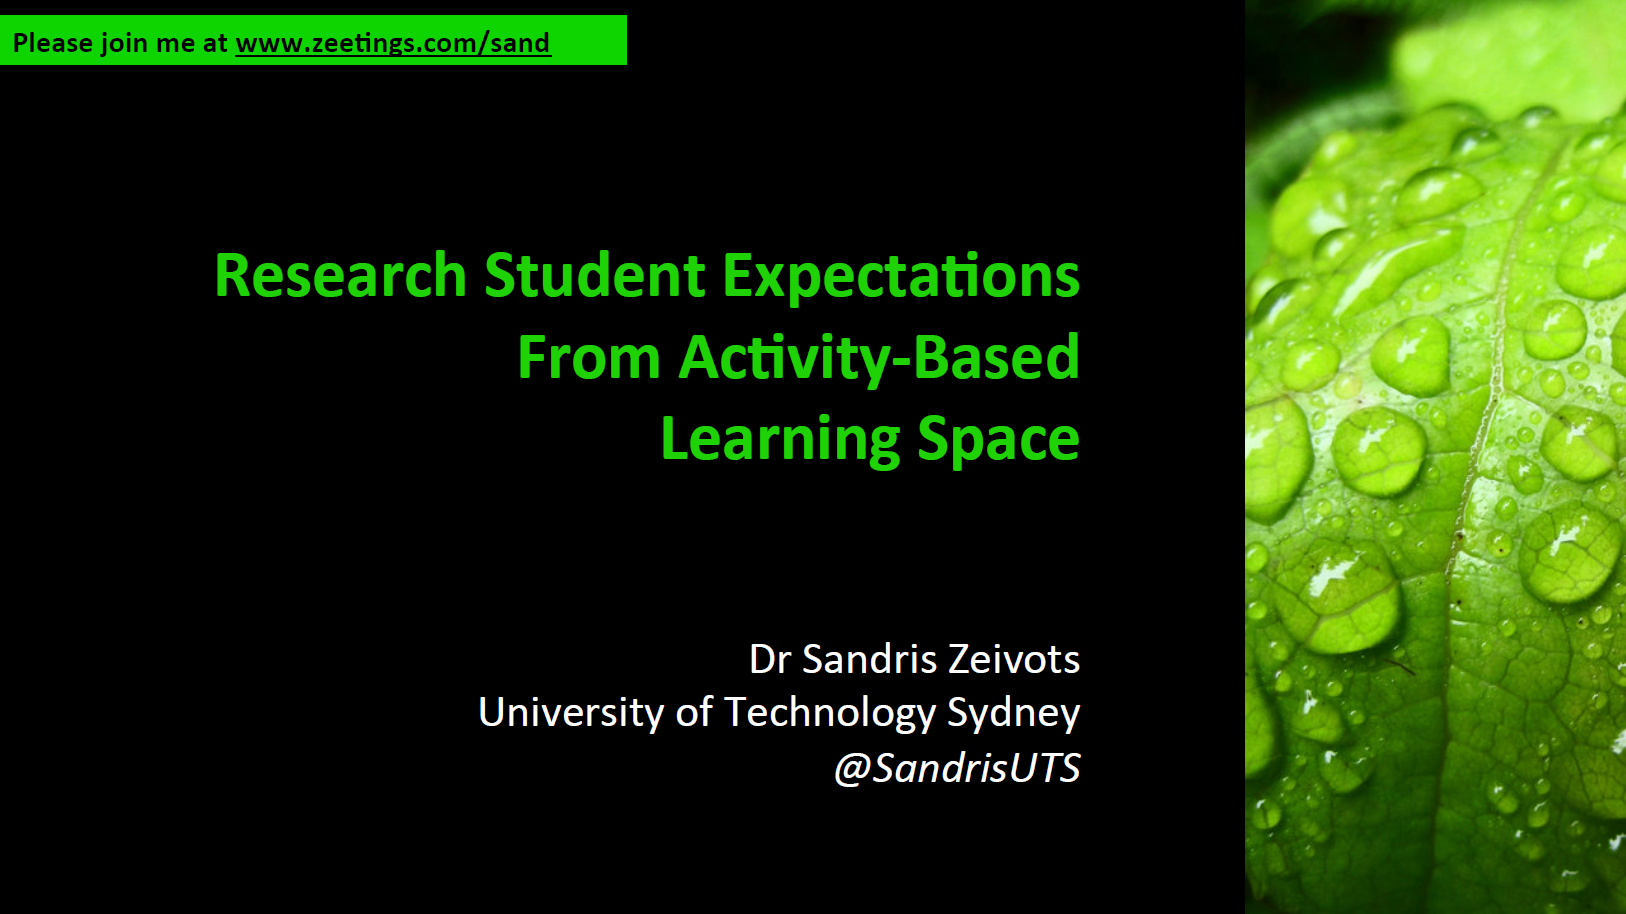 Research Student Expectations from activity based learning space